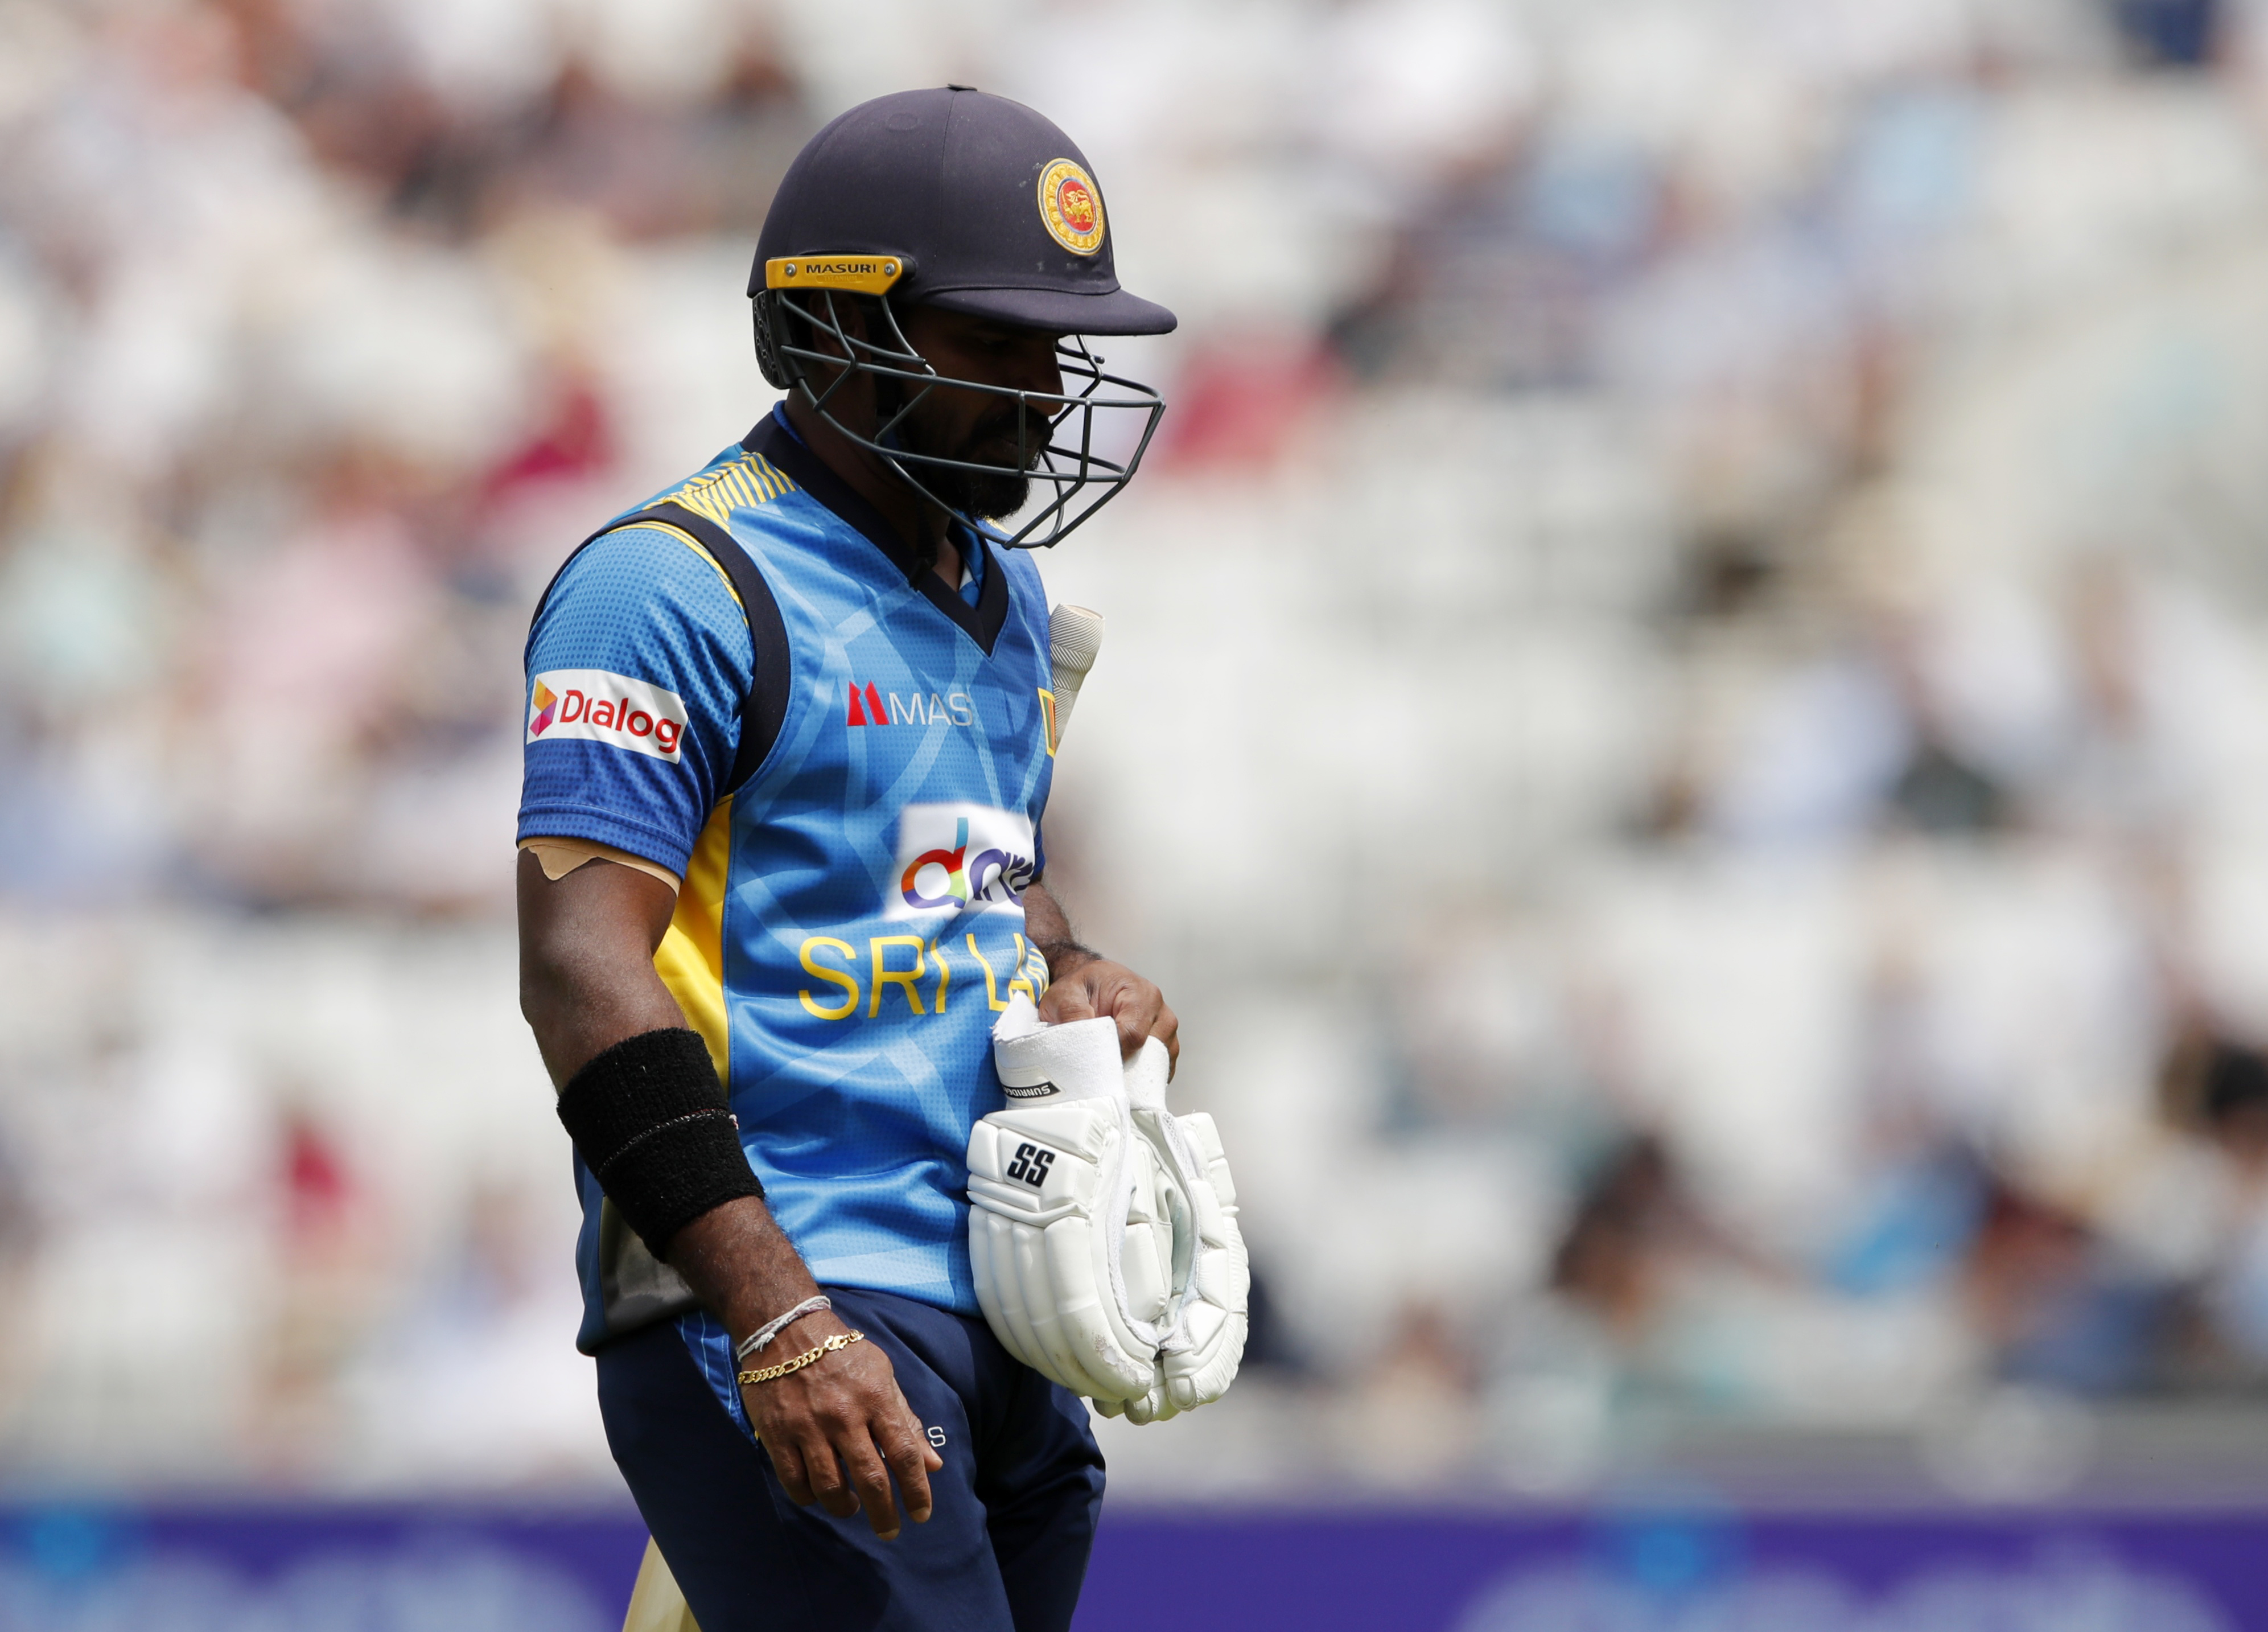 Cricket - Second One Day International - England v Sri Lanka - Kia Oval, London, Britain - July 1, 2021 Sri Lanka's Kusal Perera looks dejected after losing his wicket Action Images via Reuters/Andrew Couldridge